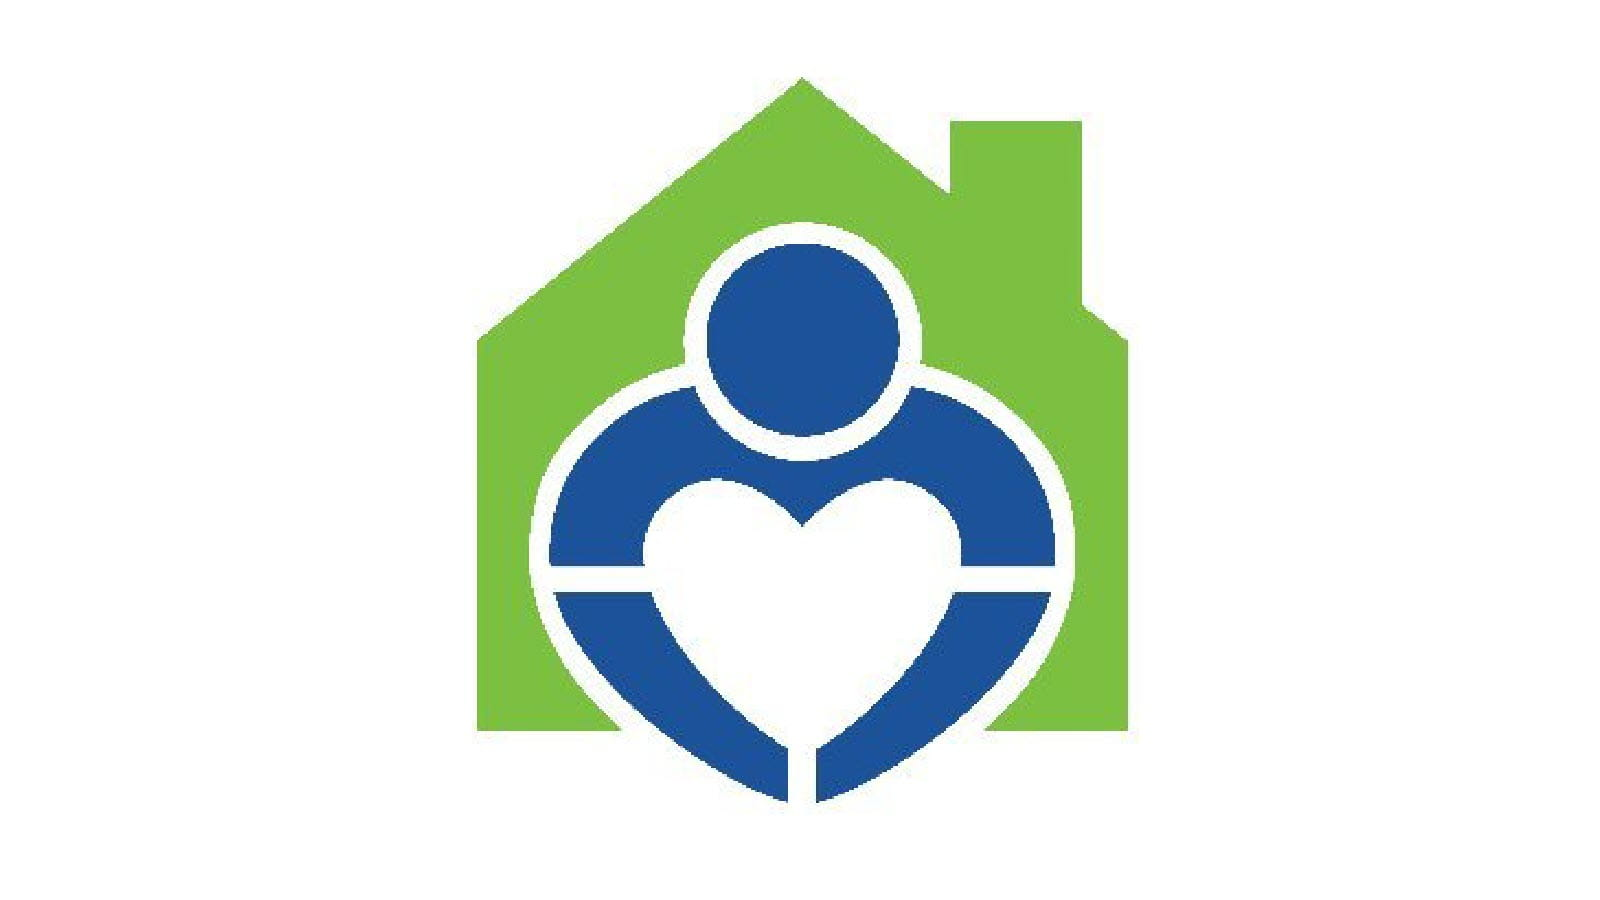 blue and green Gift of Life Family House logo featuring a heart inside a house